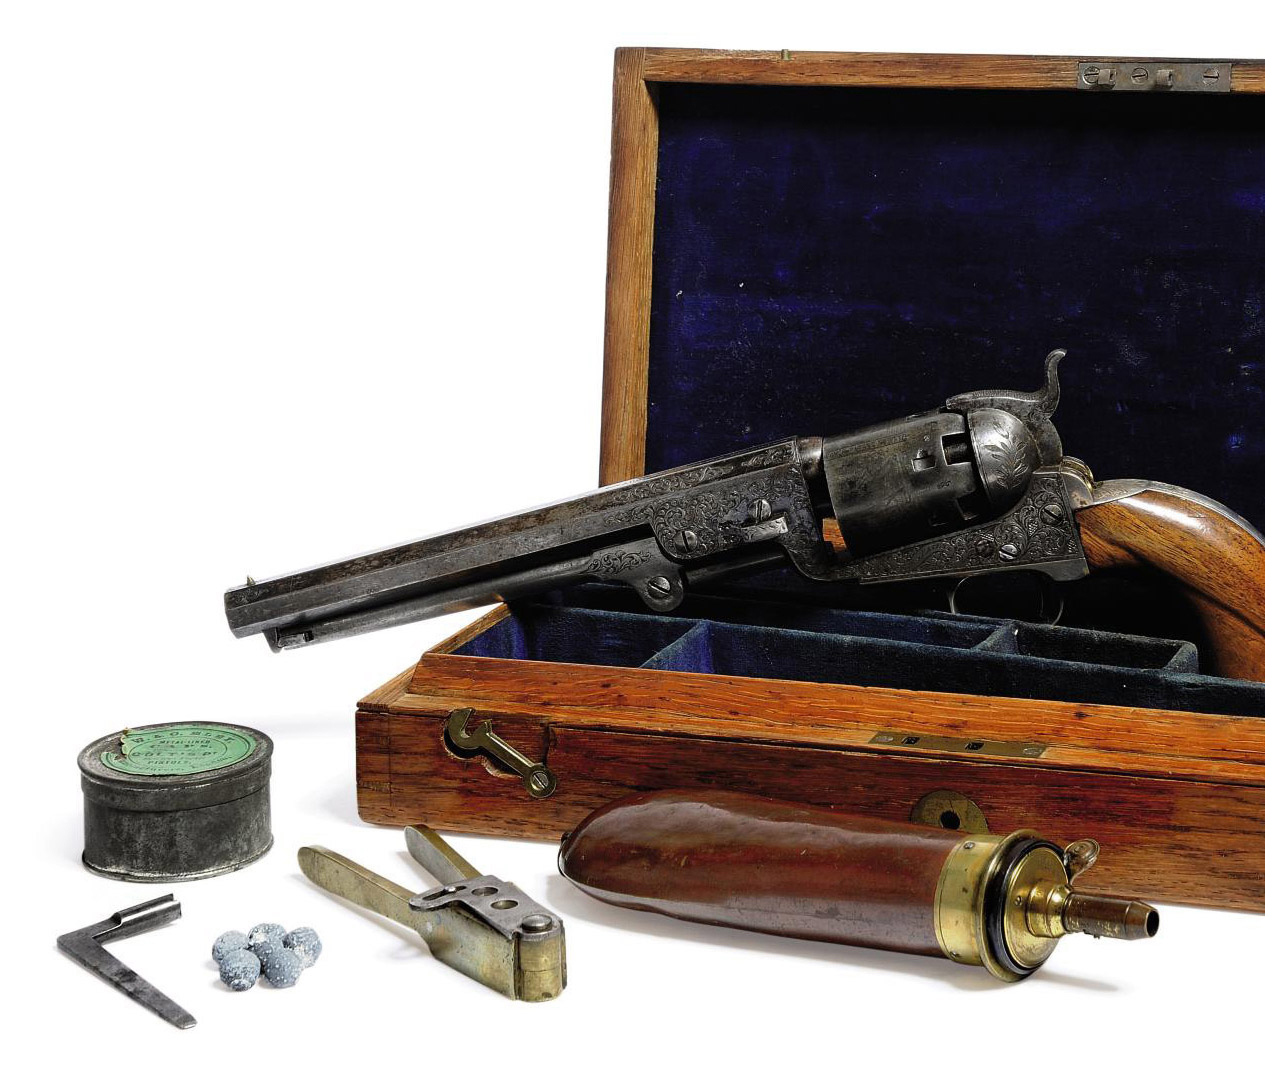 A CASED FACTORY ENGRAVED .36 'MODEL 1851' SIX-SHOT SINGLE-ACTION PERCUSSION NAVY REVOLVER